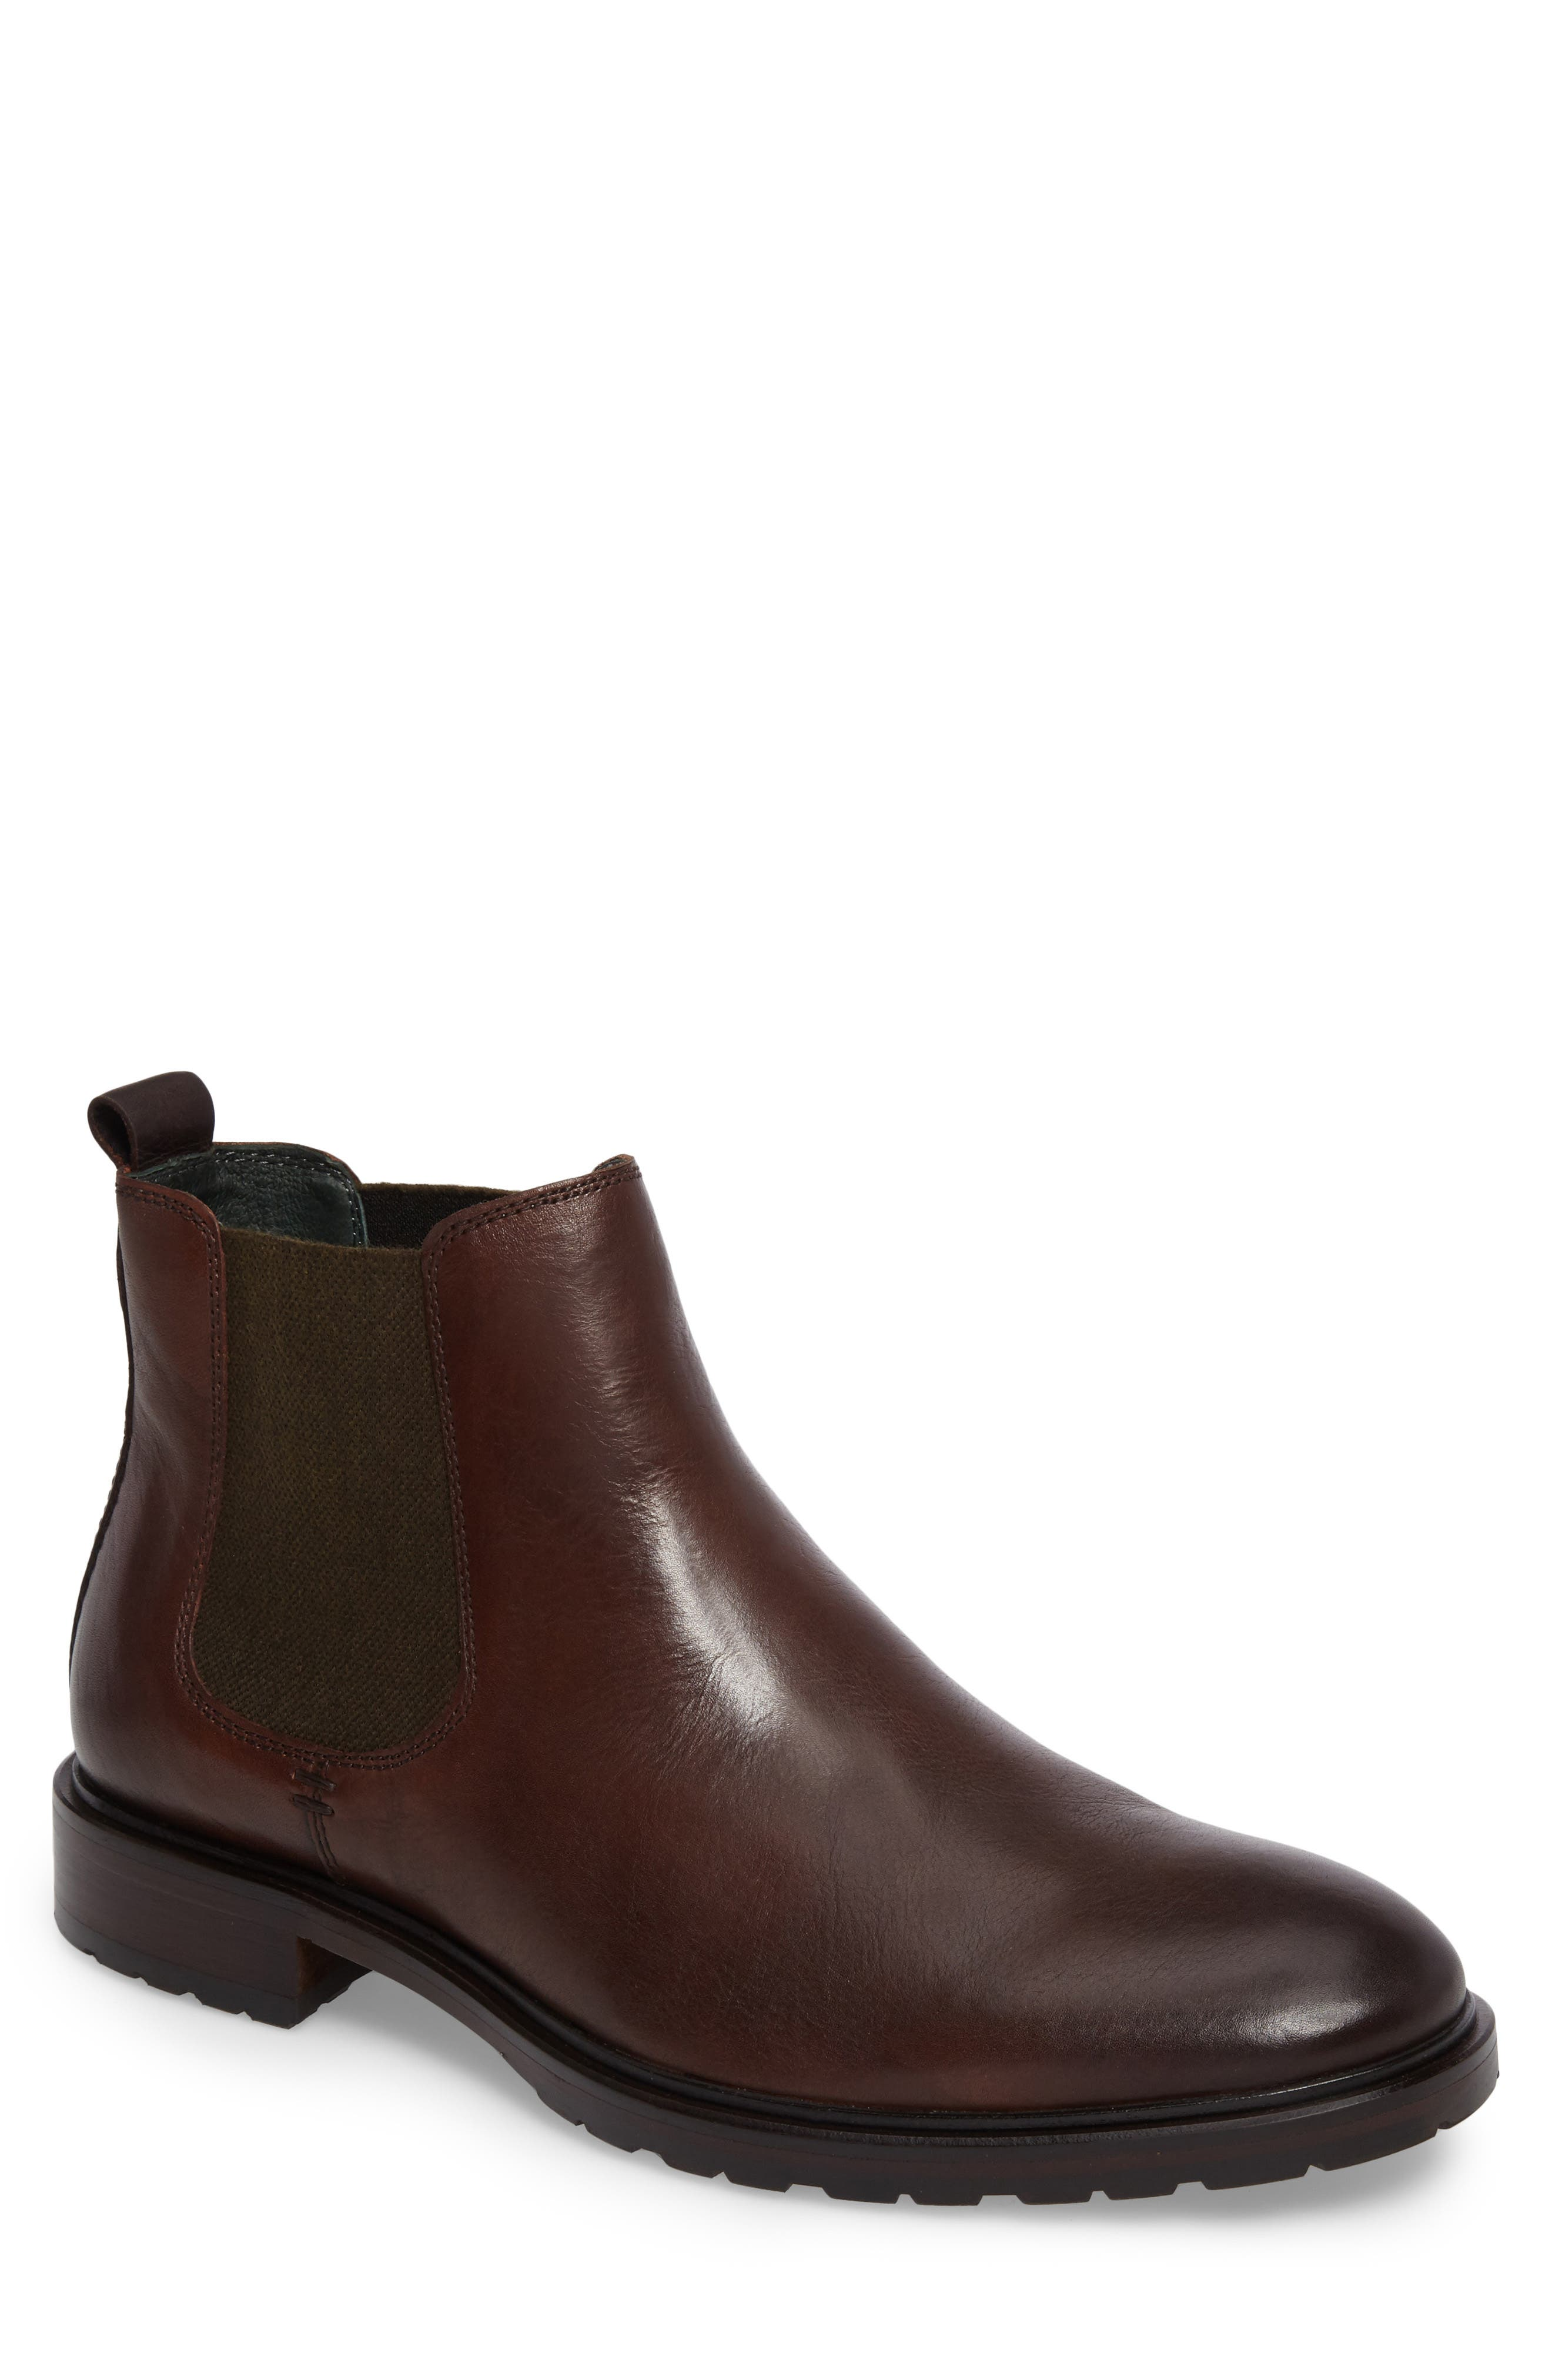 Myles Chelsea Boot,                         Main,                         color, Mahogany Leather